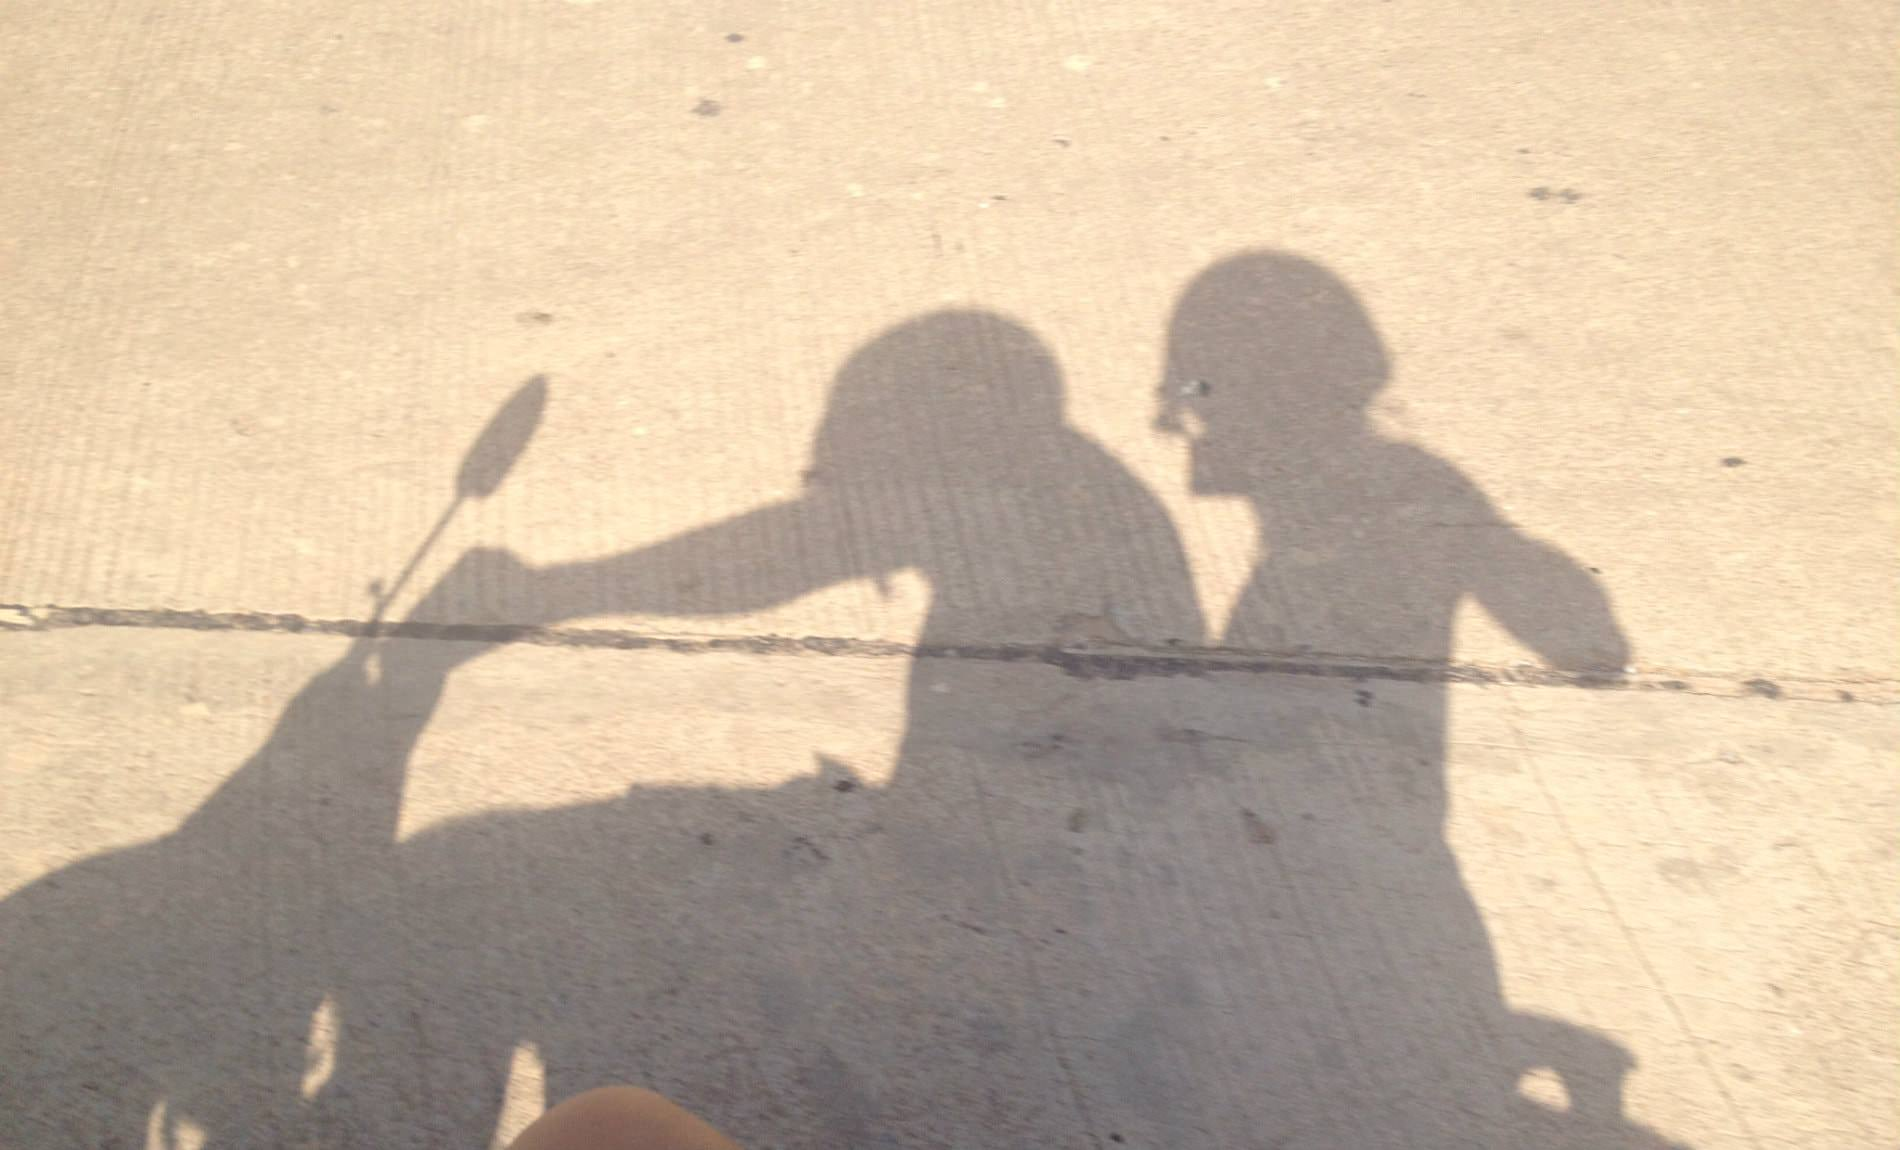 Gray shadow on concrete of two people riding a motorcycle